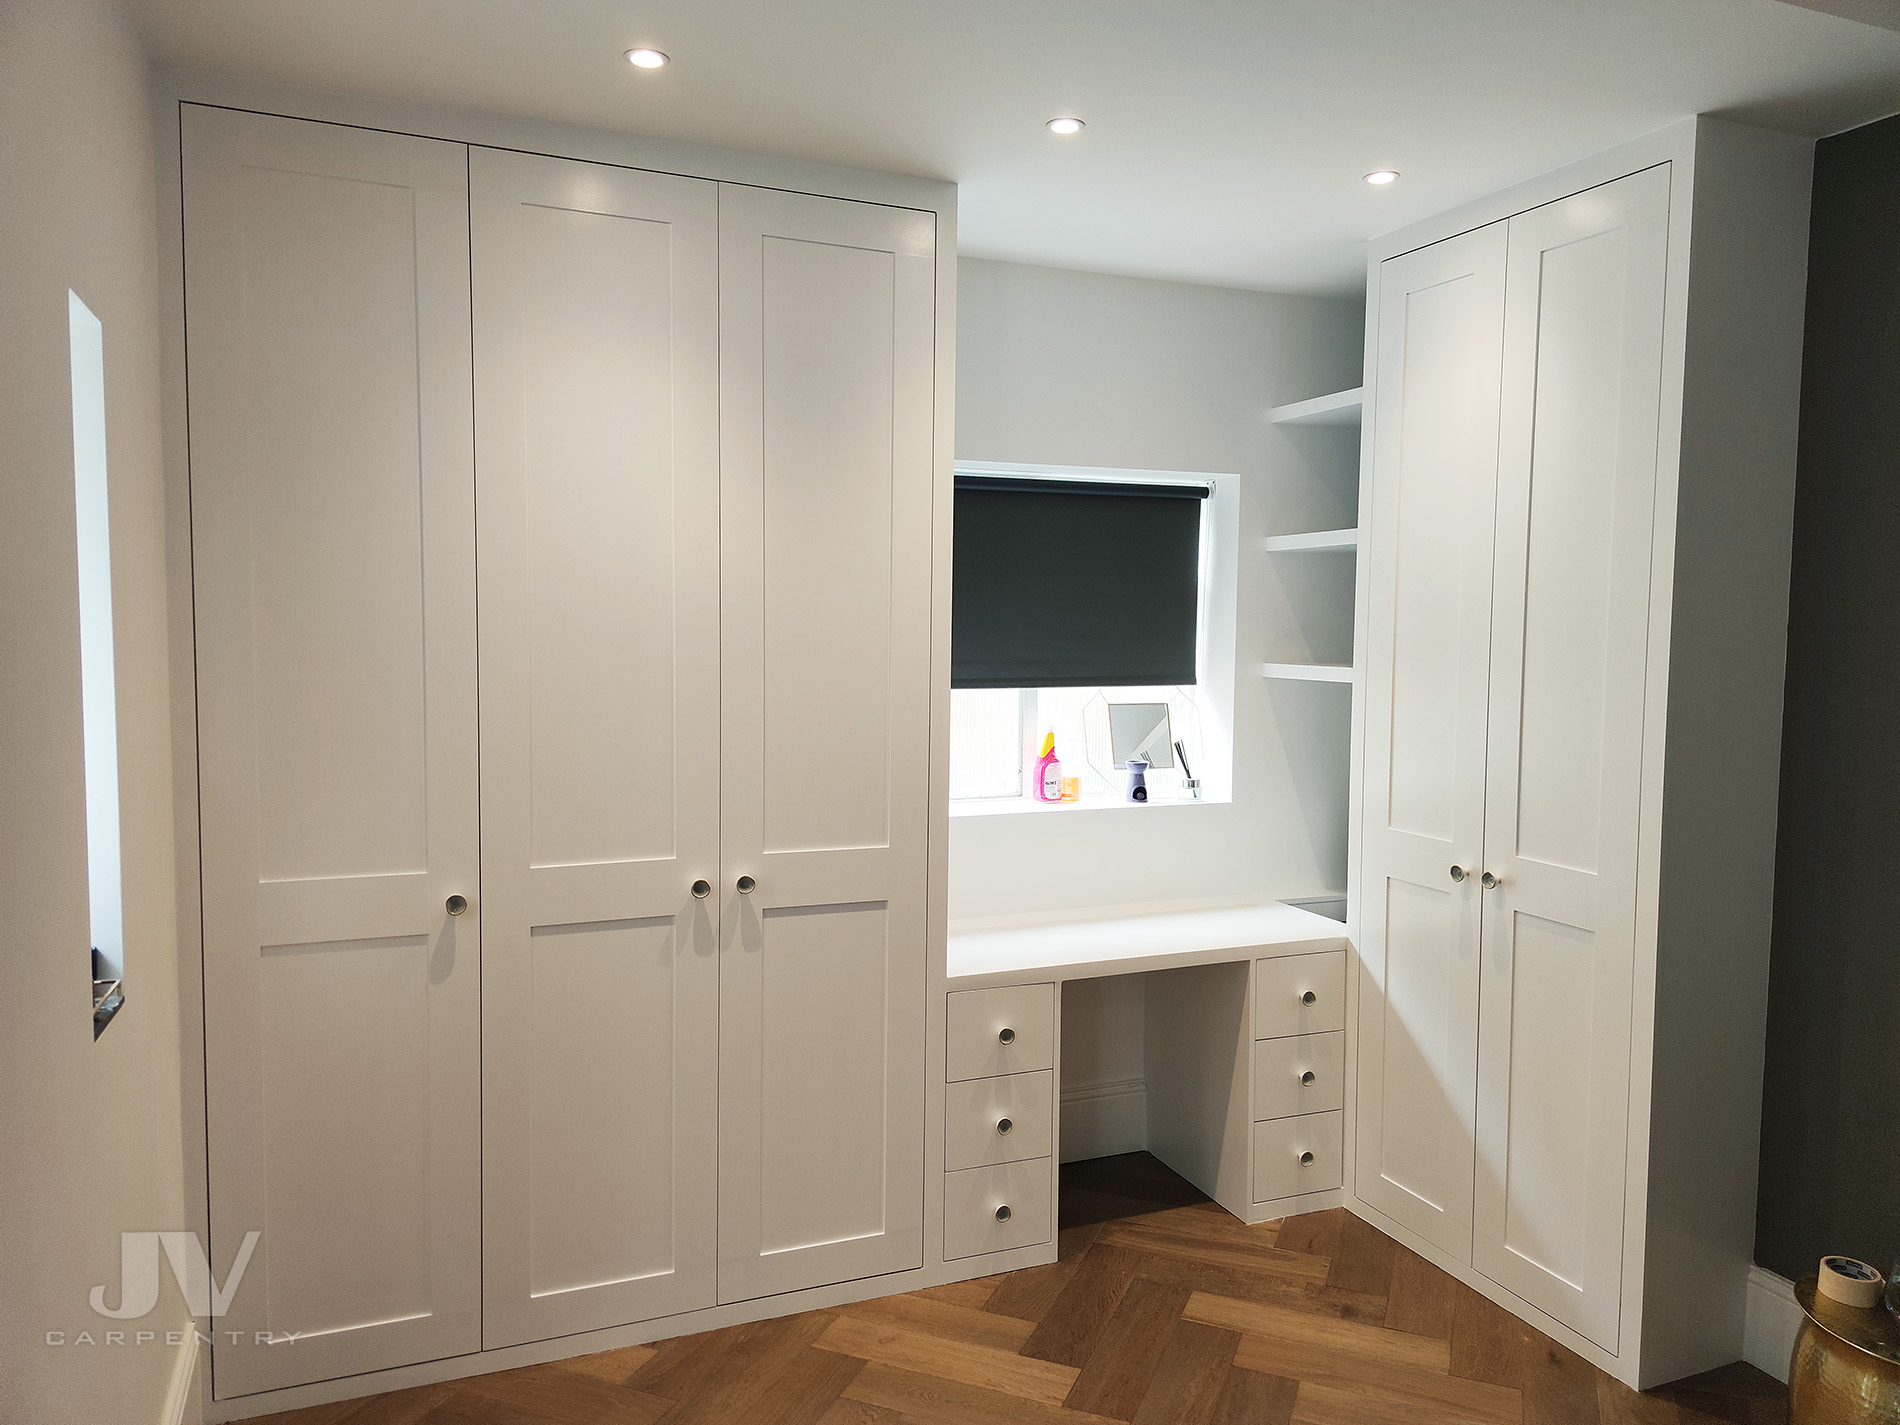 Fitted wardrobe built around window with dressing table